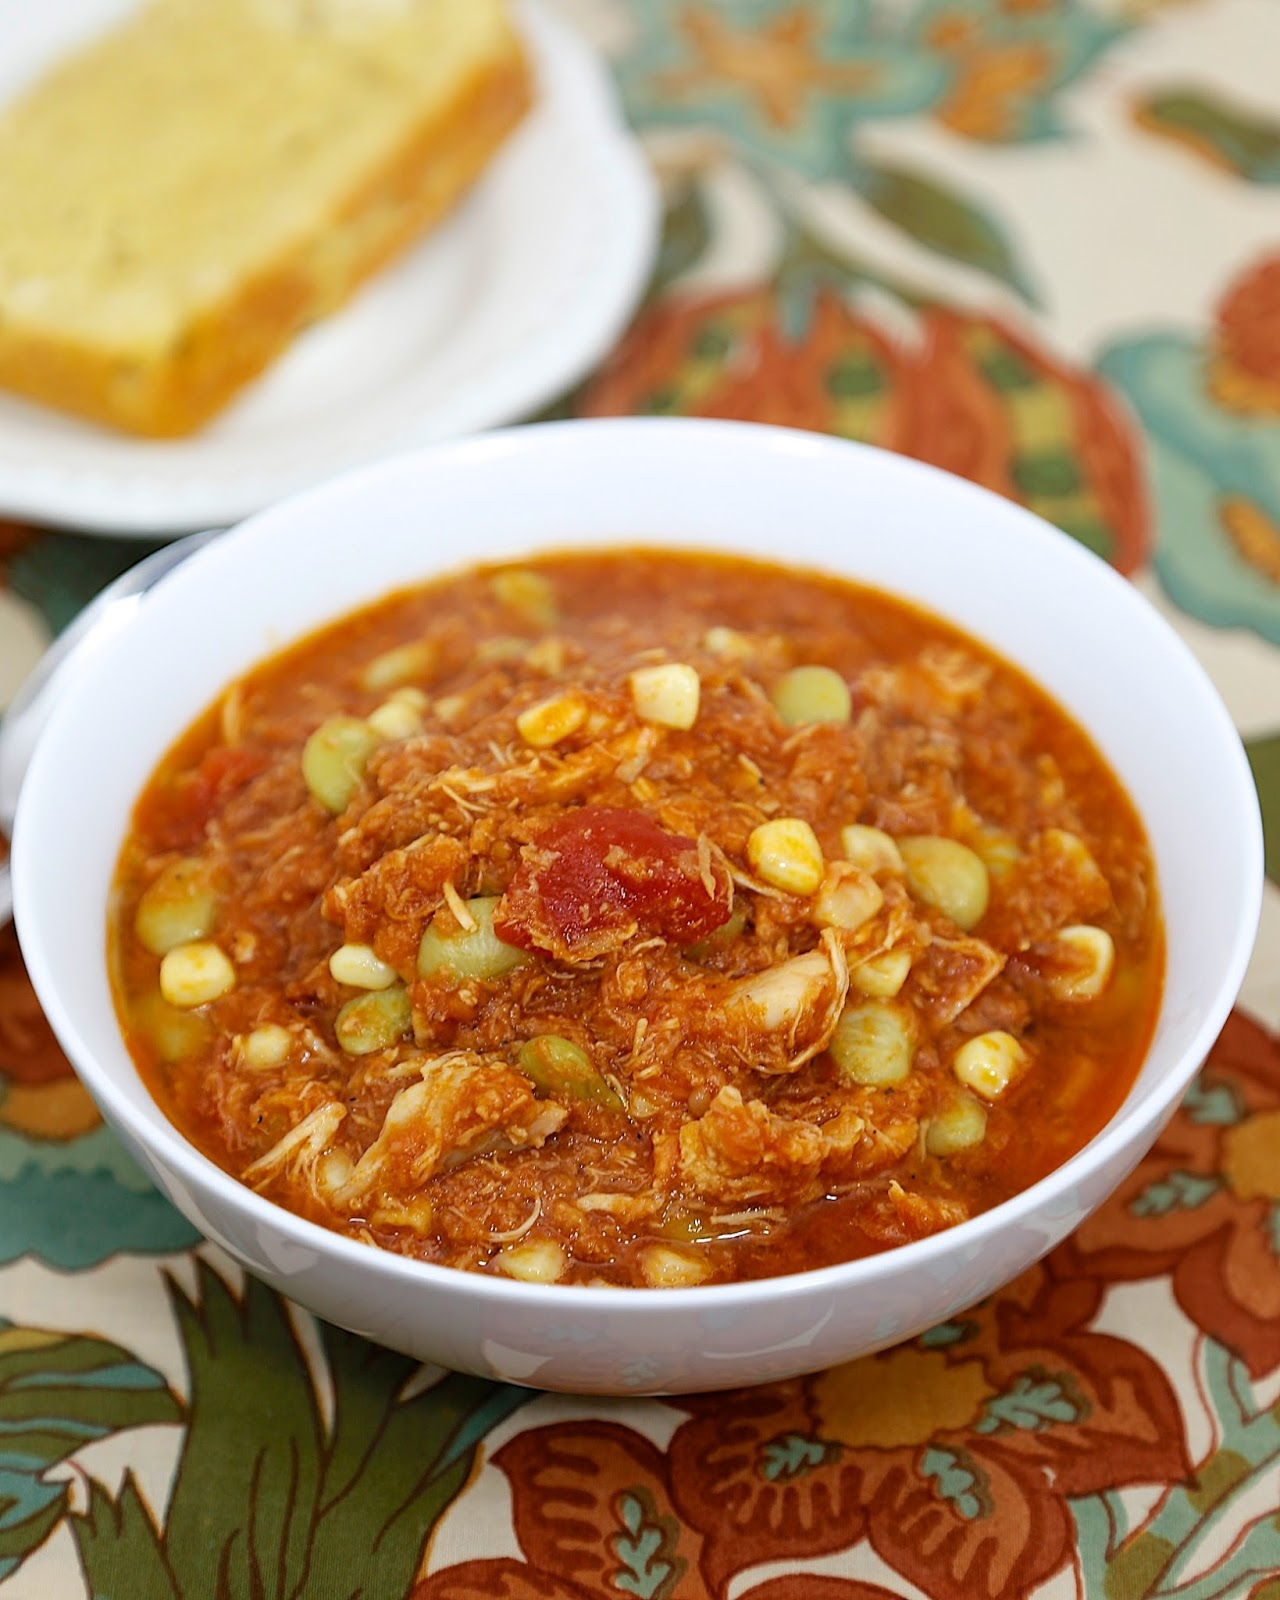 ... tailgaters favorite stew recipes dishmaps tailgaters favorite stew